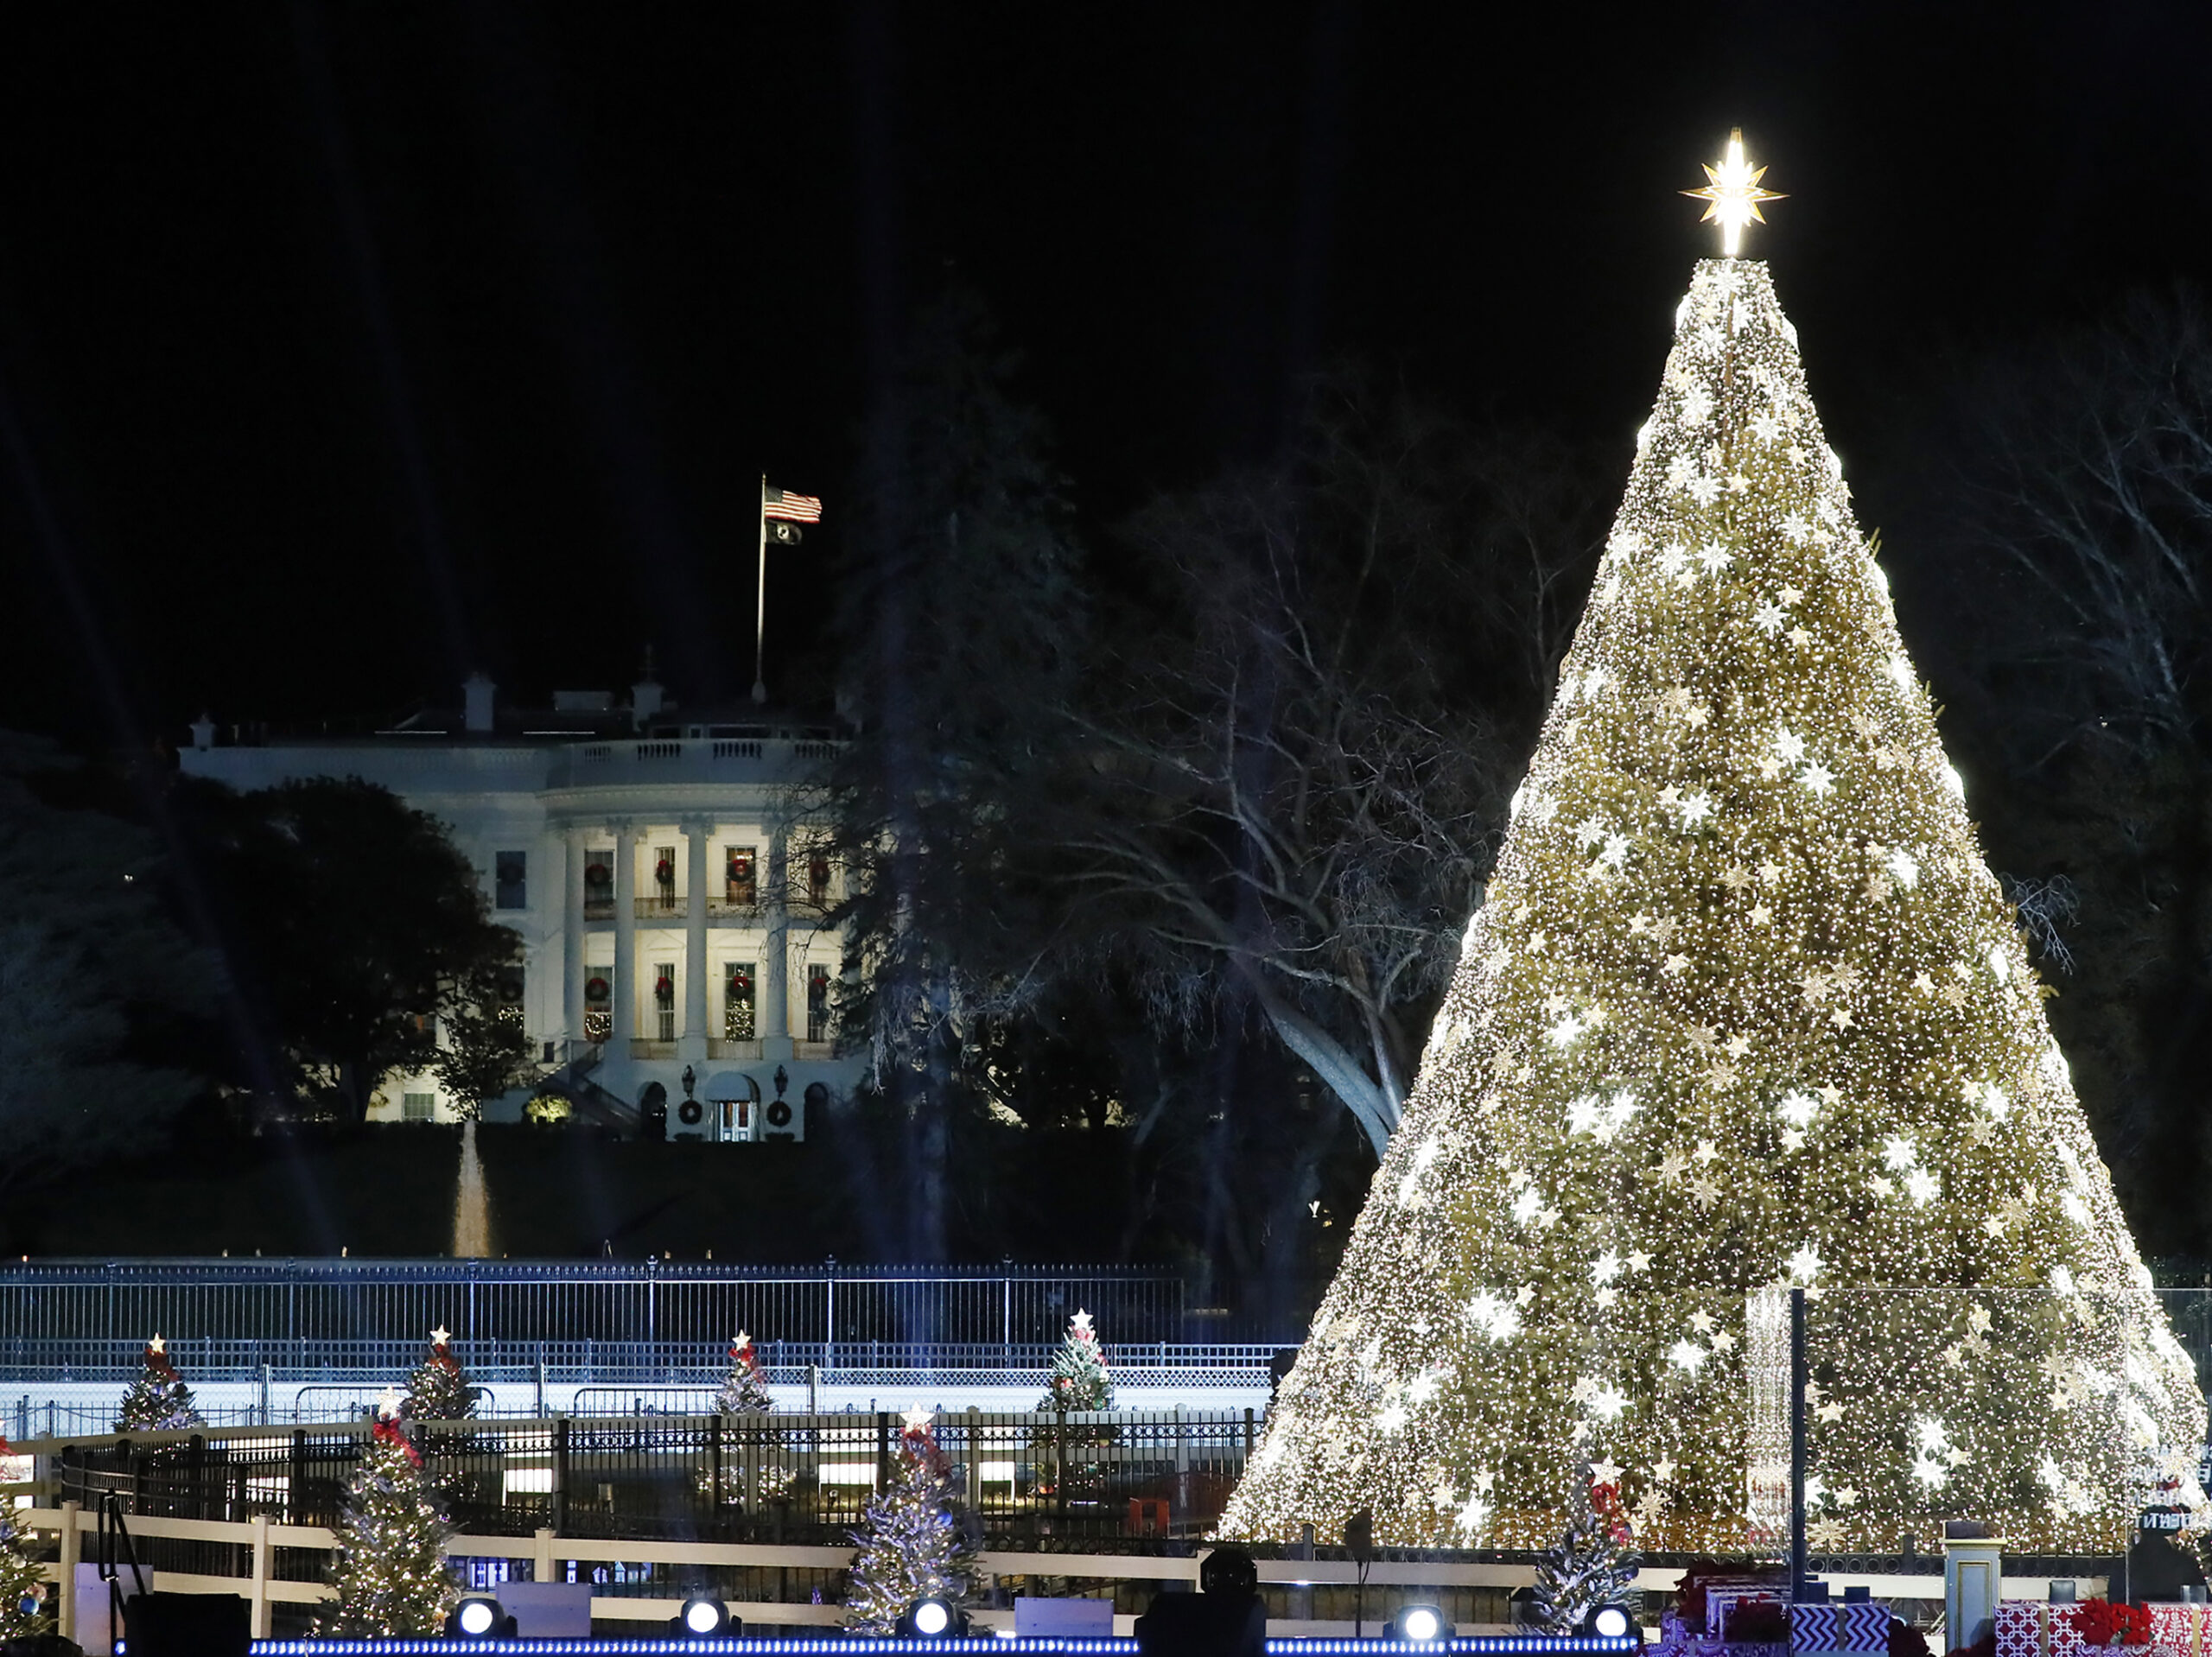 2019 National Christmas Tree, illuminated at night, with the White House in the background.